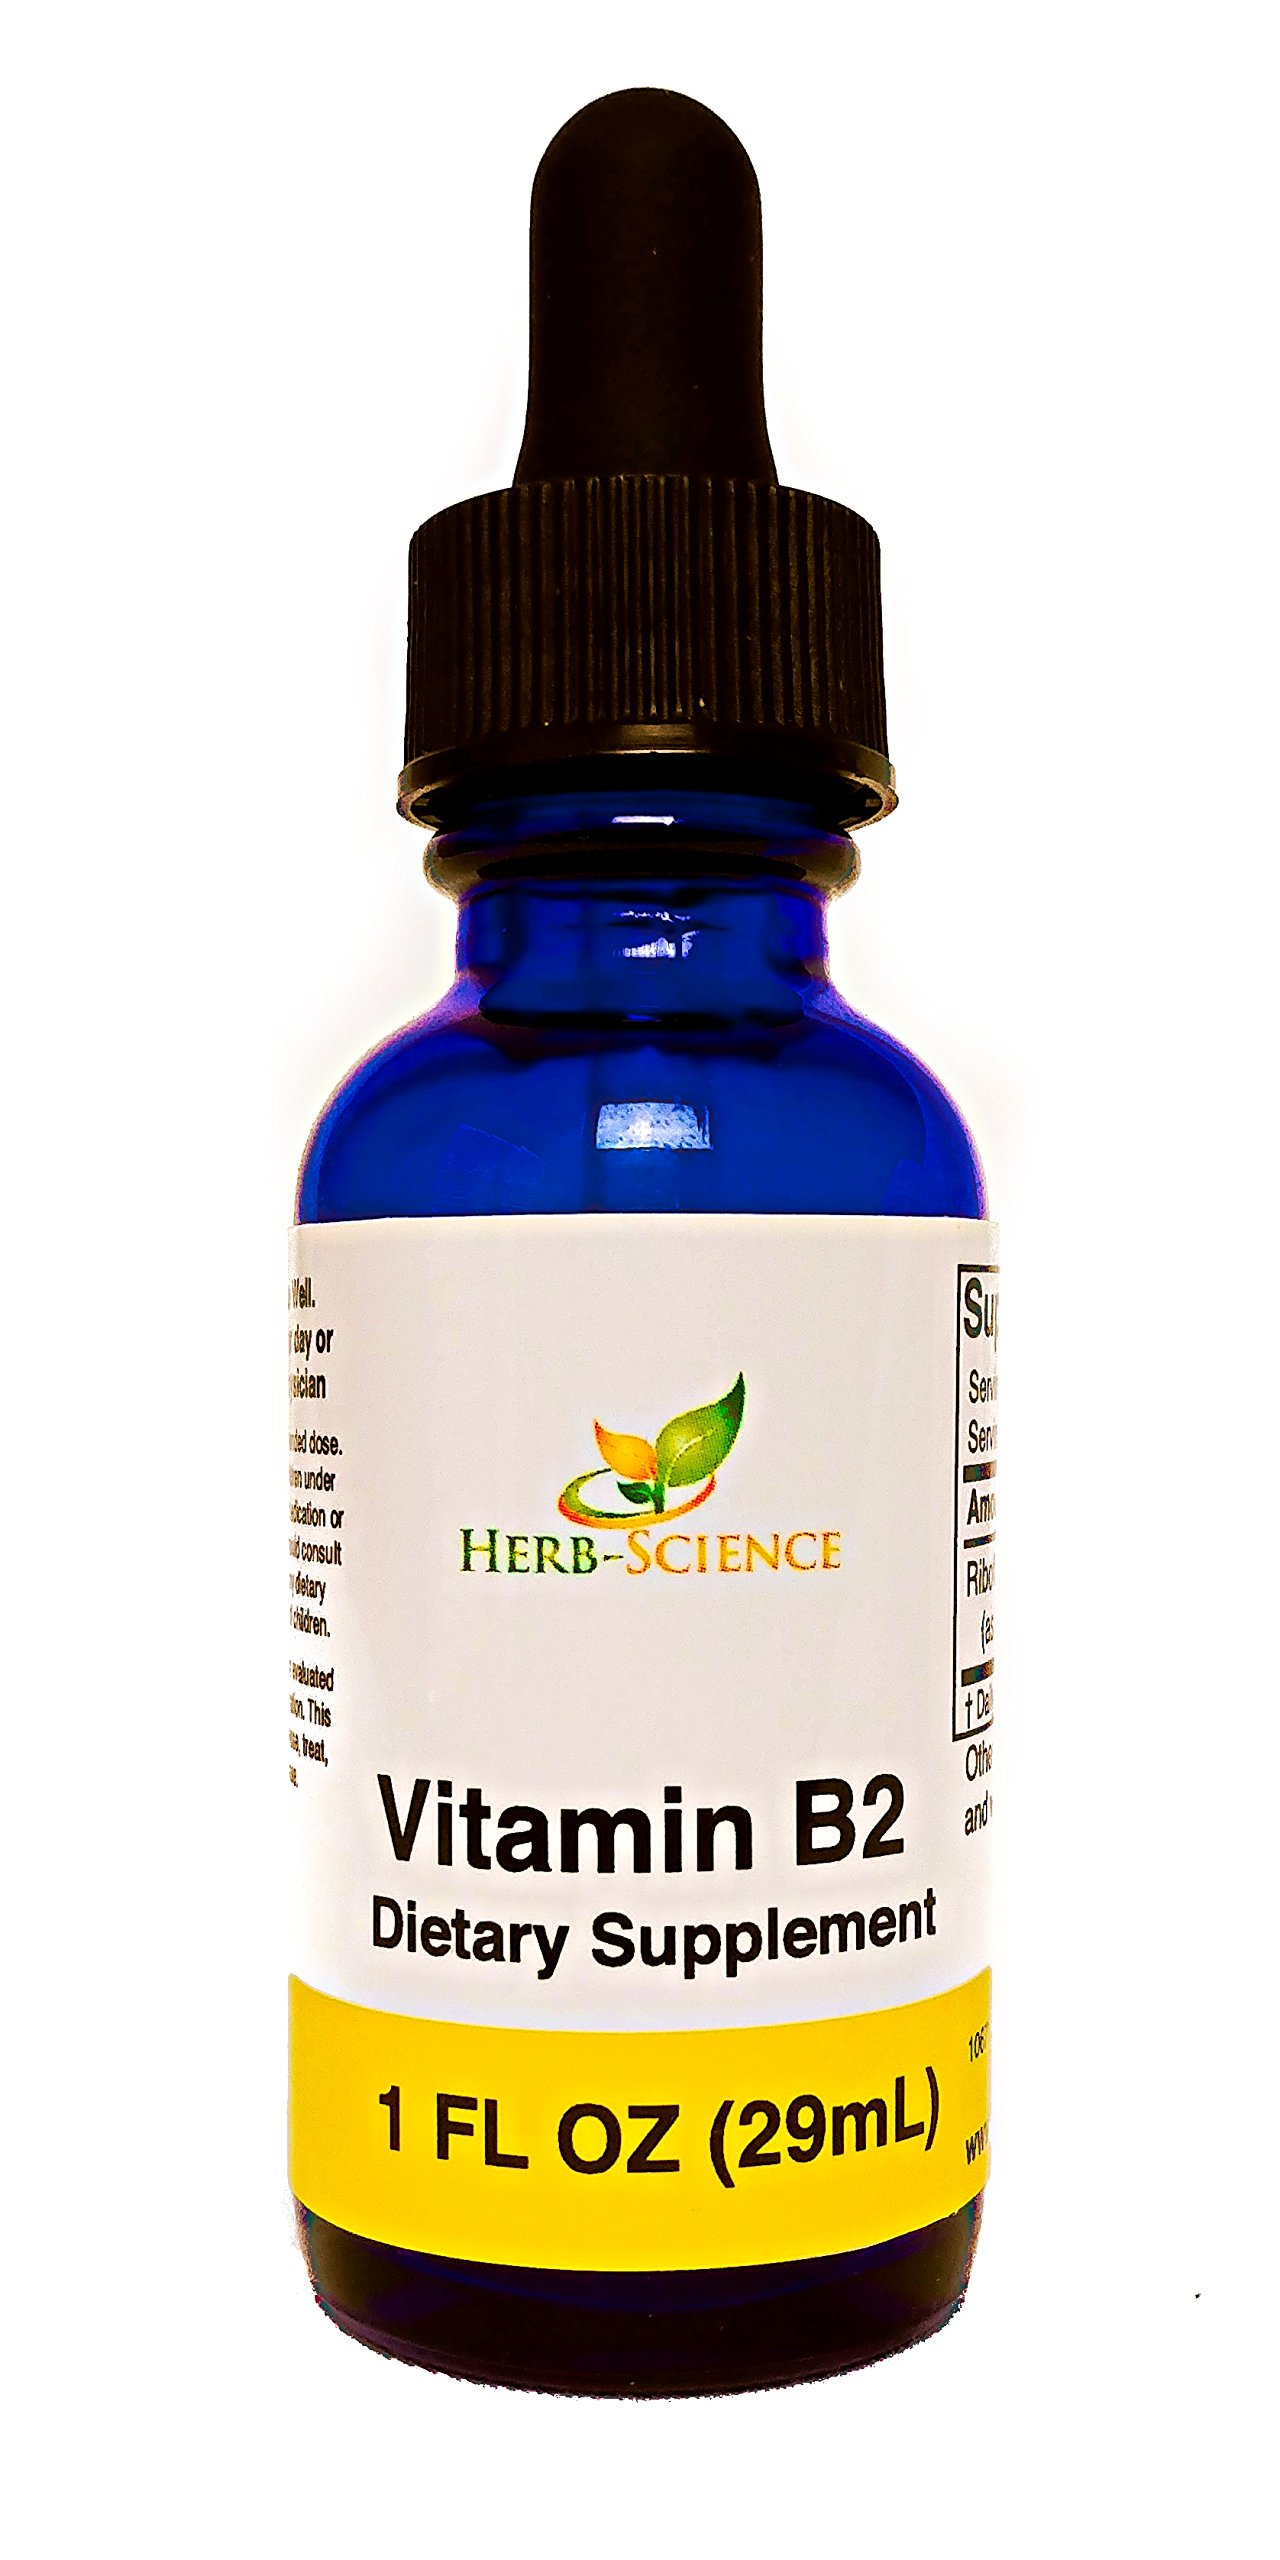 Liquid Vitamin B2 Riboflavin Drops, Alcohol-Free Liquid Extract Support Digestion, Maintain Proper Energy Levels, Boost Collagen Production for Healthy Hair, Nails, Skin, Herb-Science (1 oz) by Herb-Science